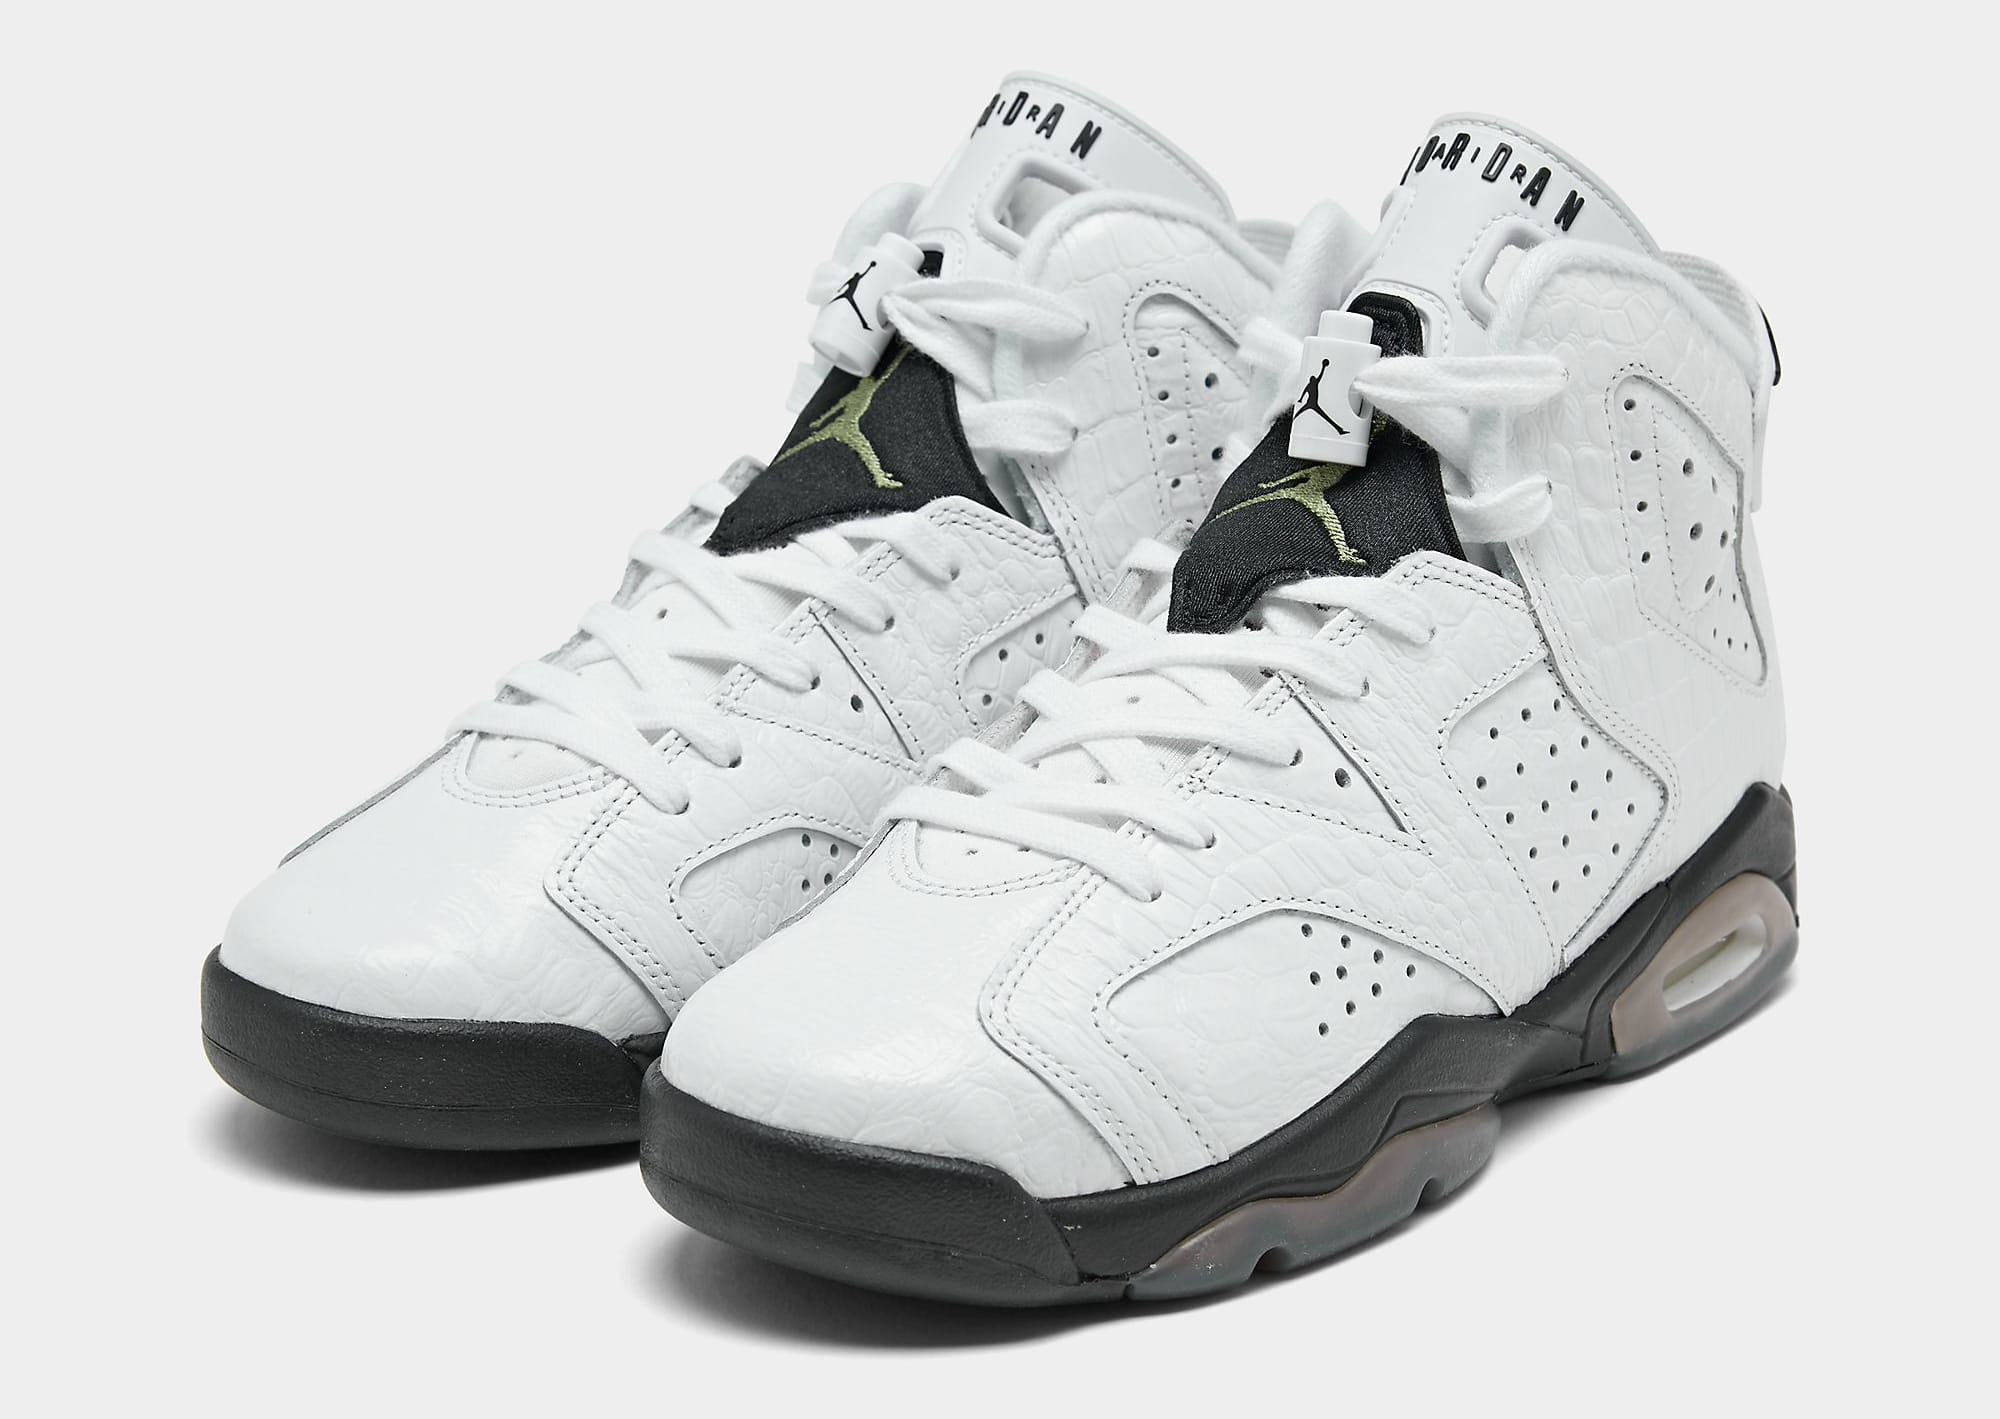 'Alligator' Air Jordan 6 Arrives Next Week